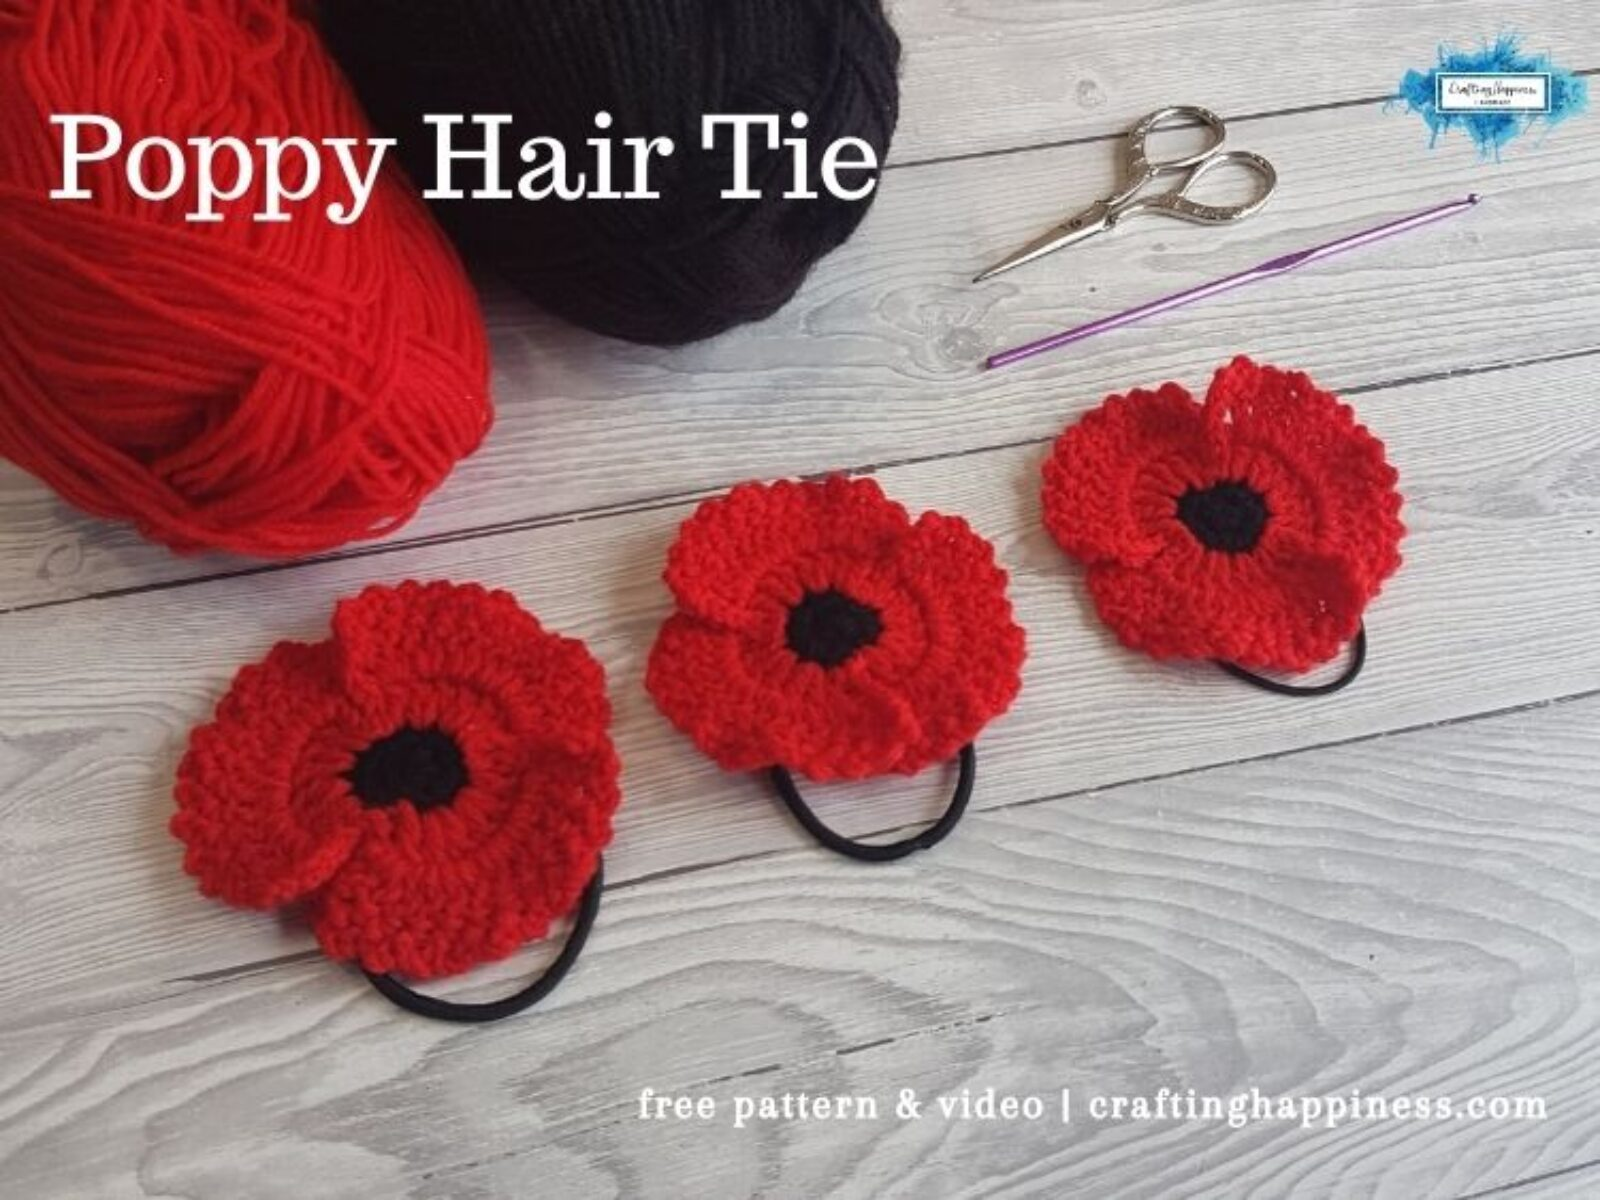 FB BLOG POSTER - Poppy Hair Tie